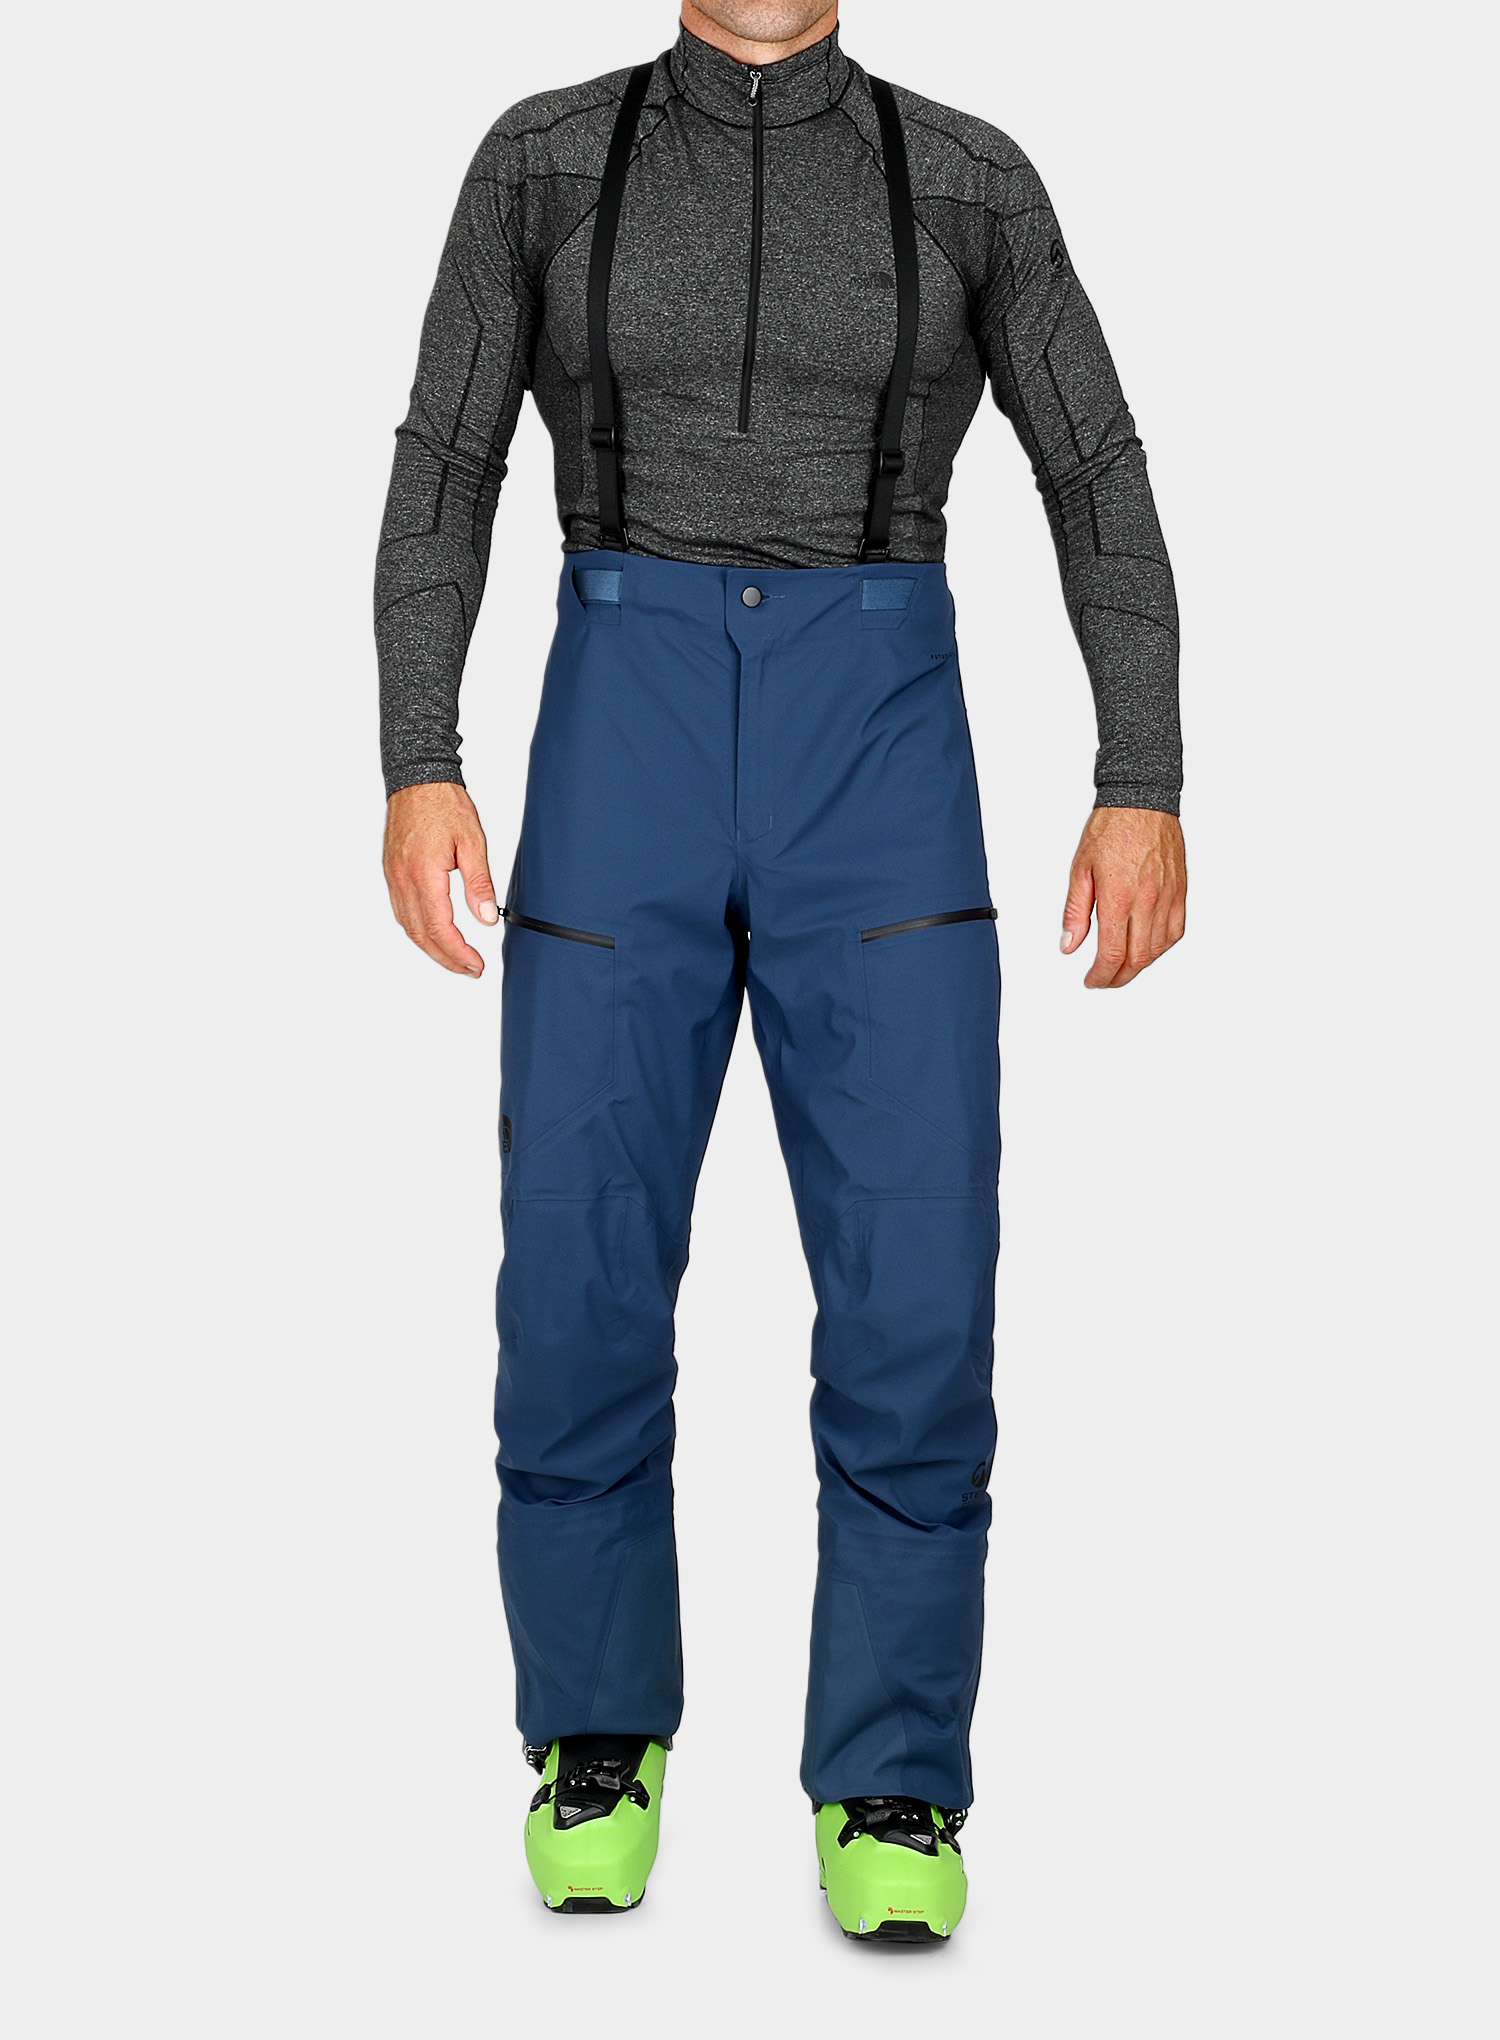 Spodnie The North Face Freethinker FUTURELIGHT™ Pant - wing teal - zdjęcie nr. 1